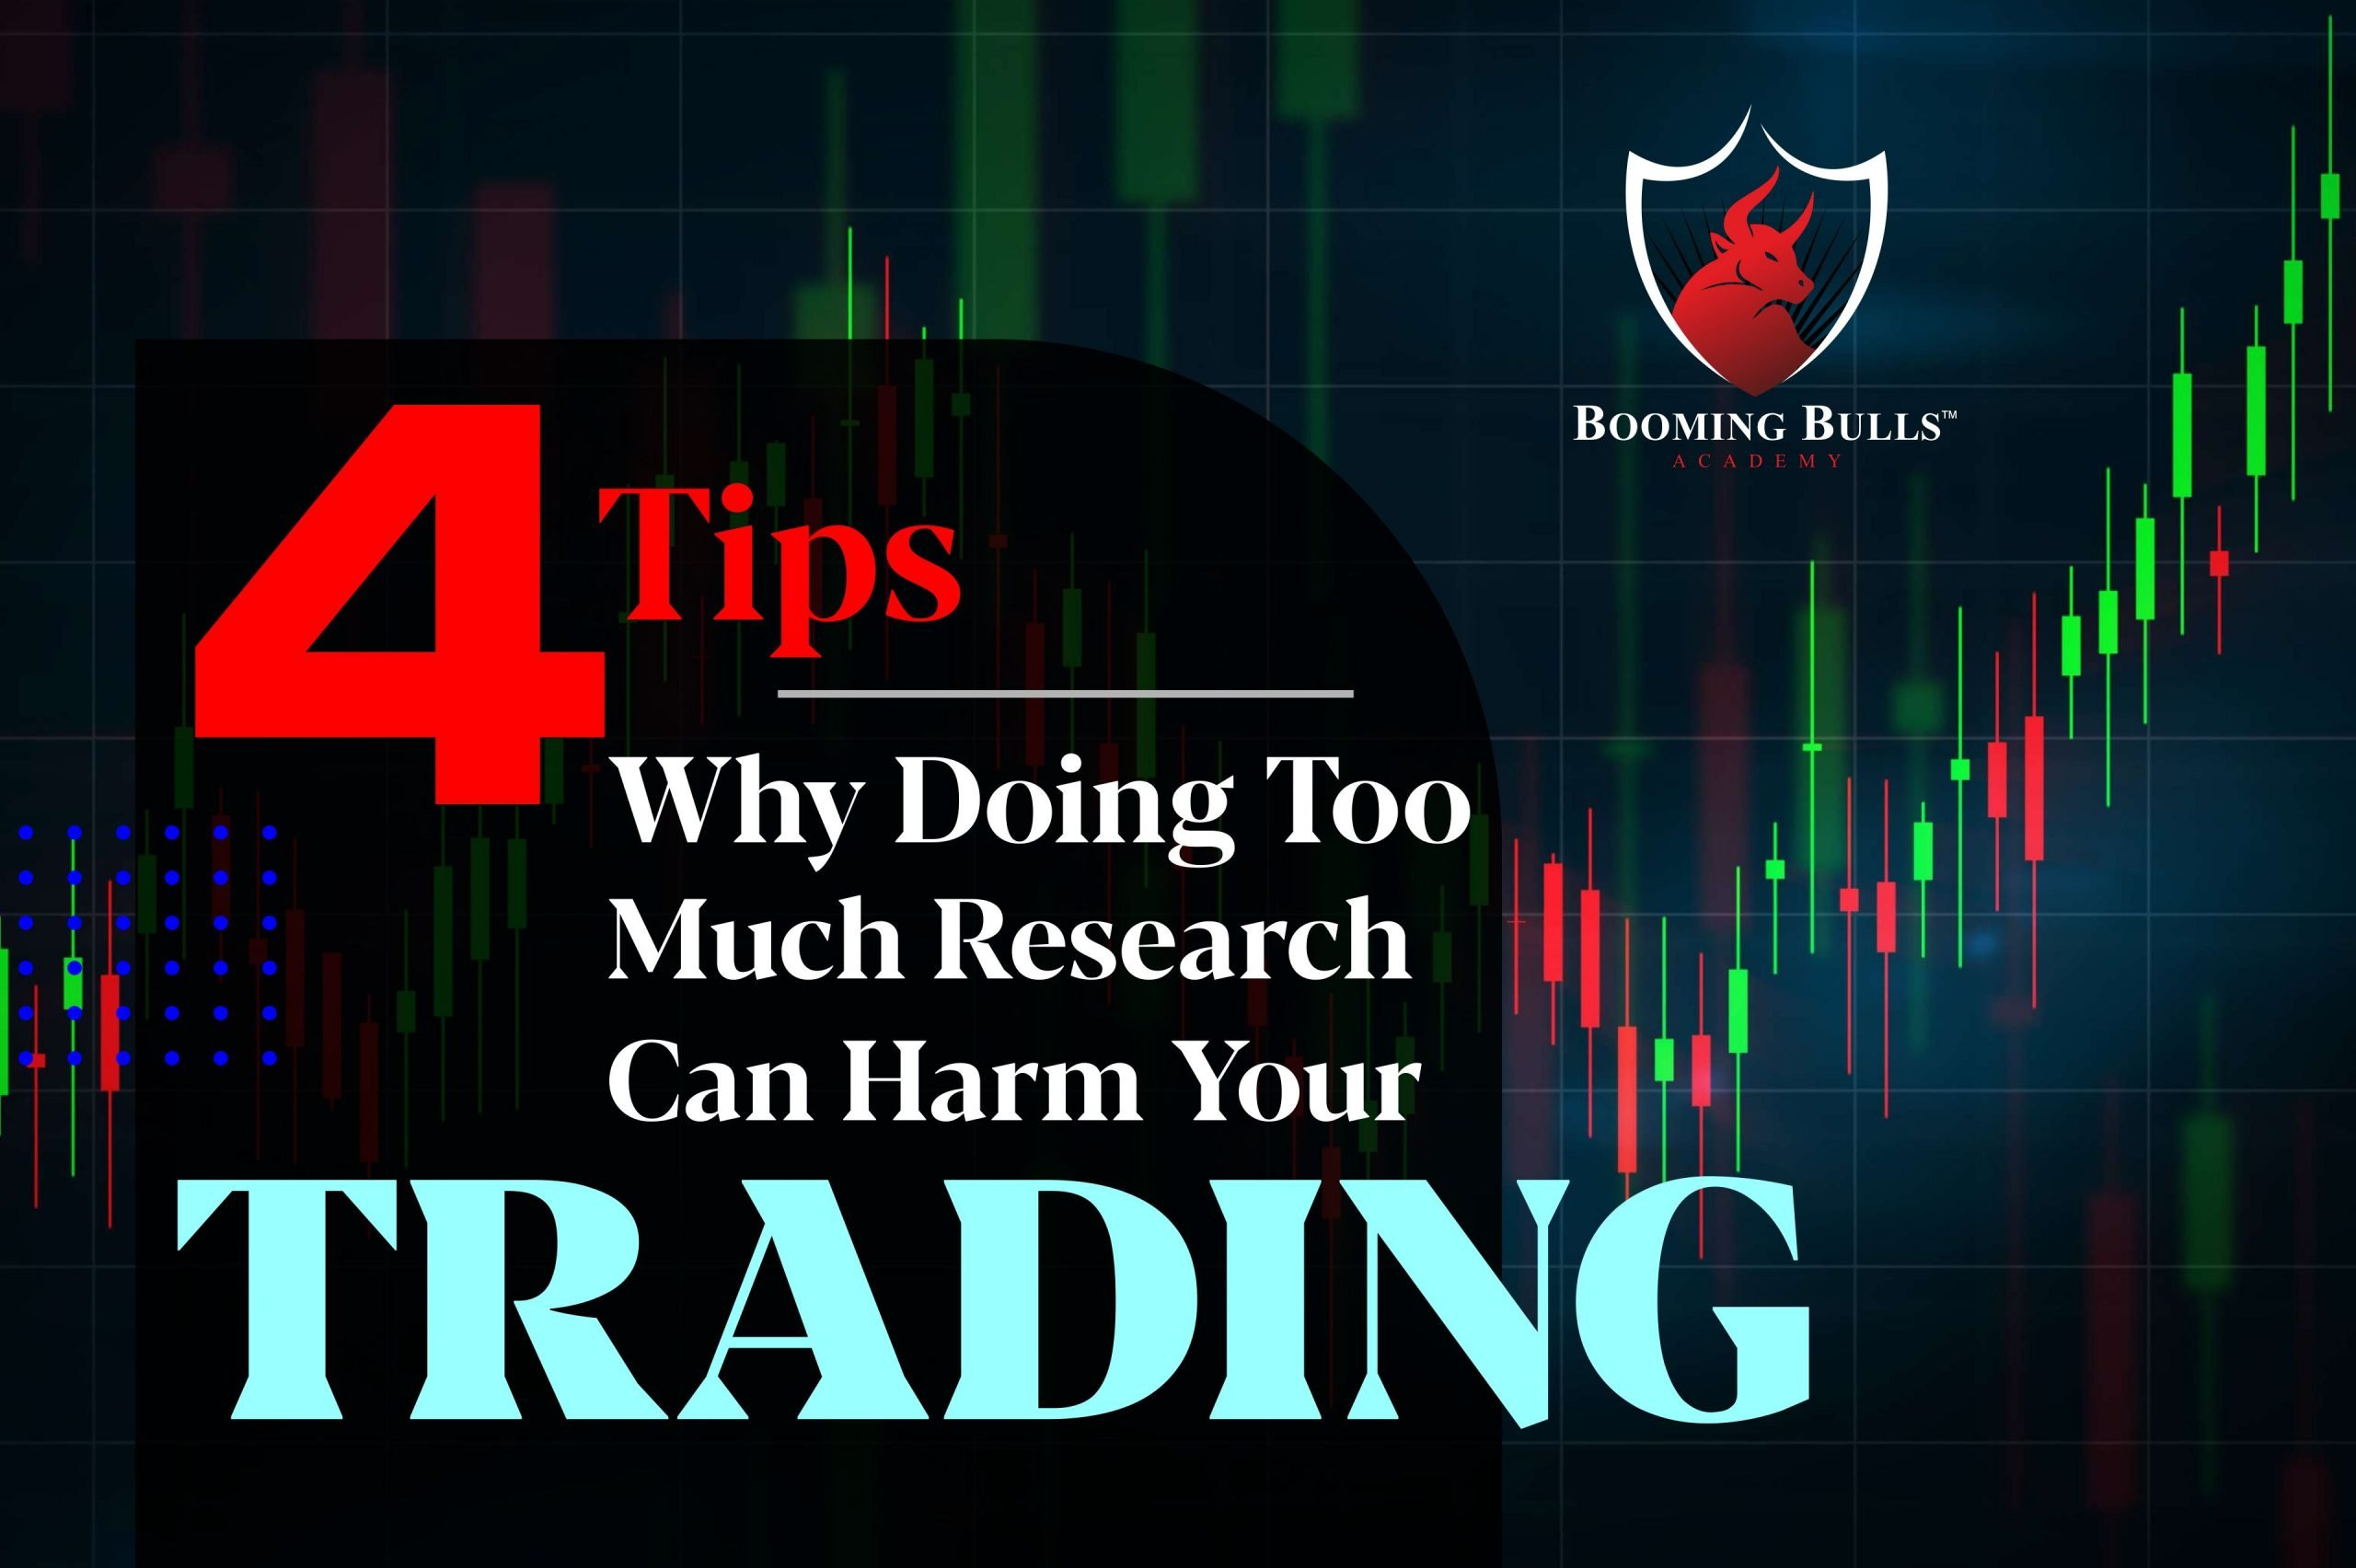 4 Tips Why Doing Too Much Research Can Harm Your Trading?